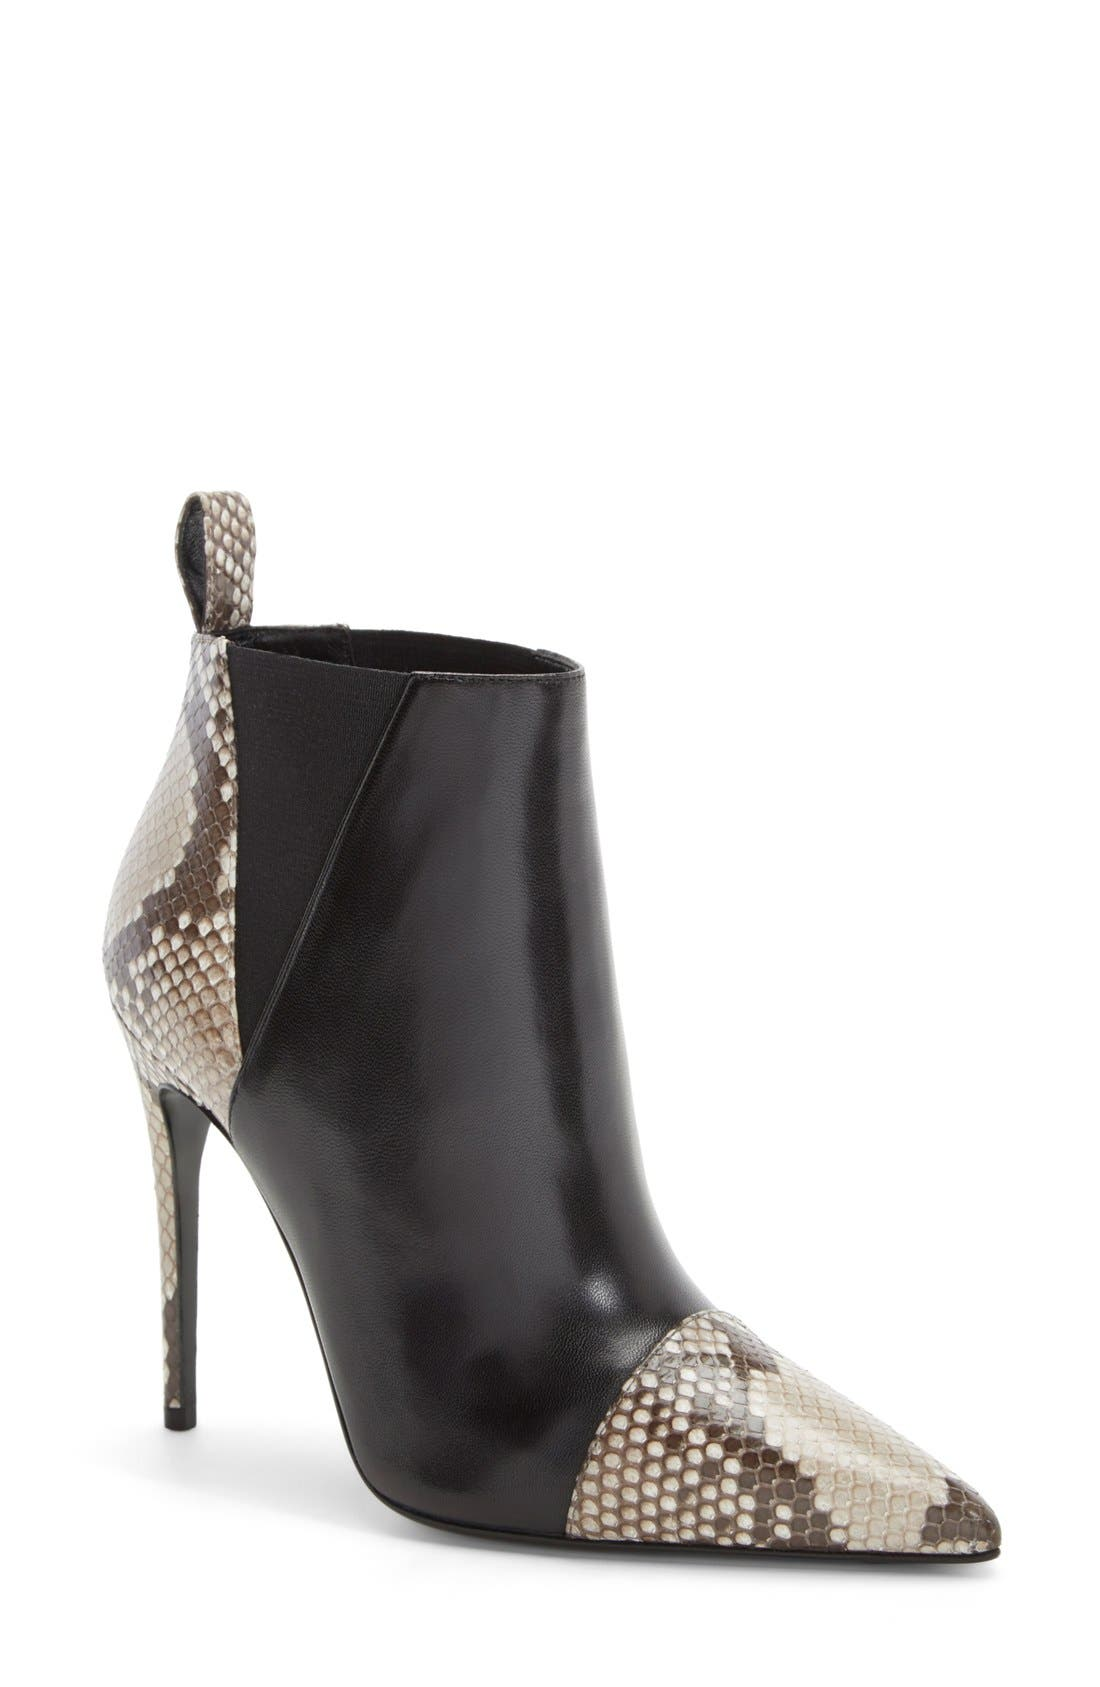 'Daisy' Pointy Toe Genuine Python & Leather Bootie,                             Main thumbnail 1, color,                             001